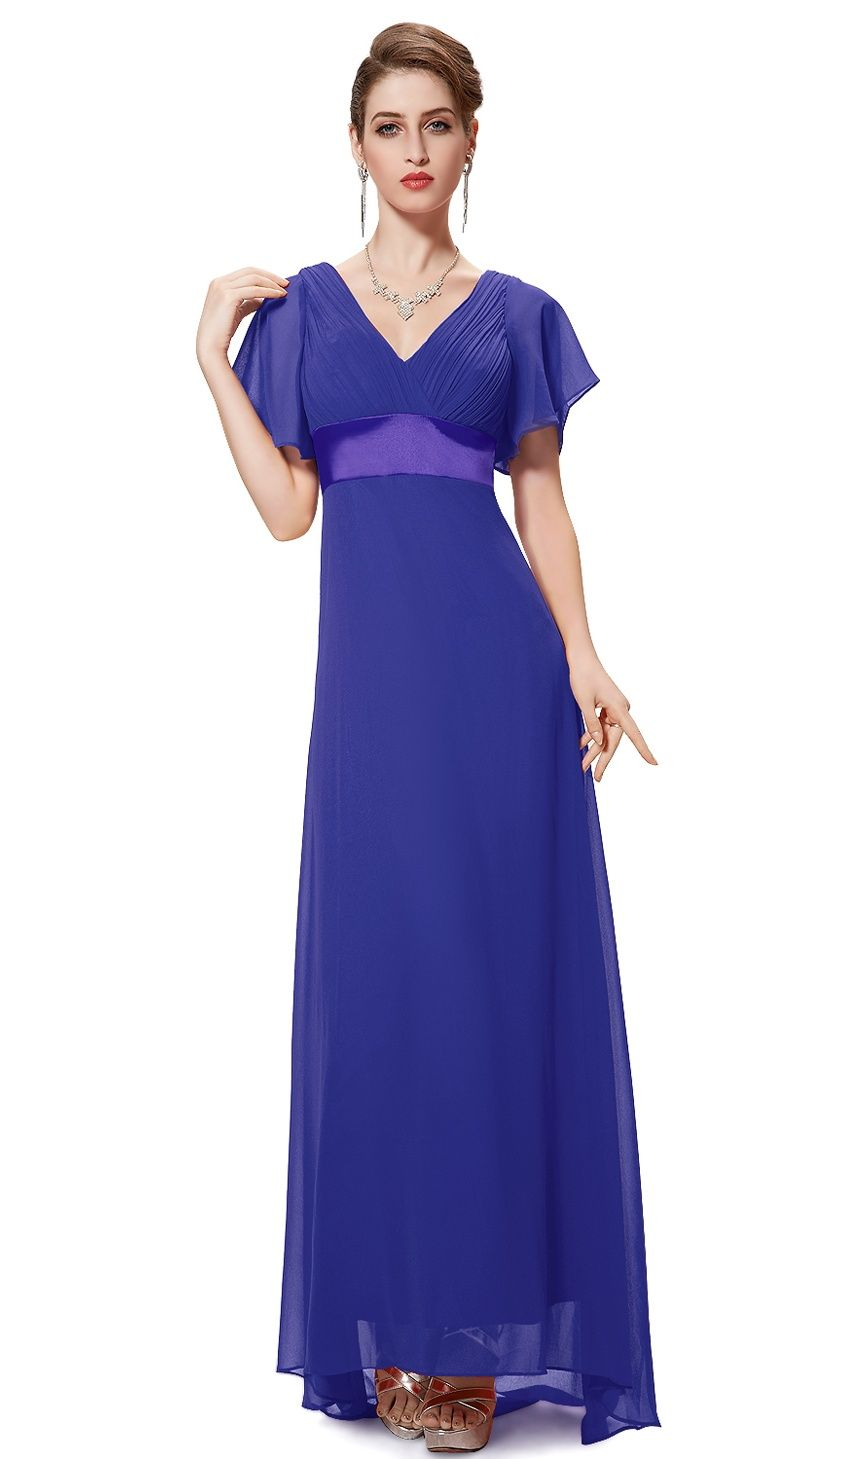 578094c73a38 Ever-Pretty Womens V-Neck Vintage Plus Size Evening Homecoming Party  Bridesmaid Wedding Dress